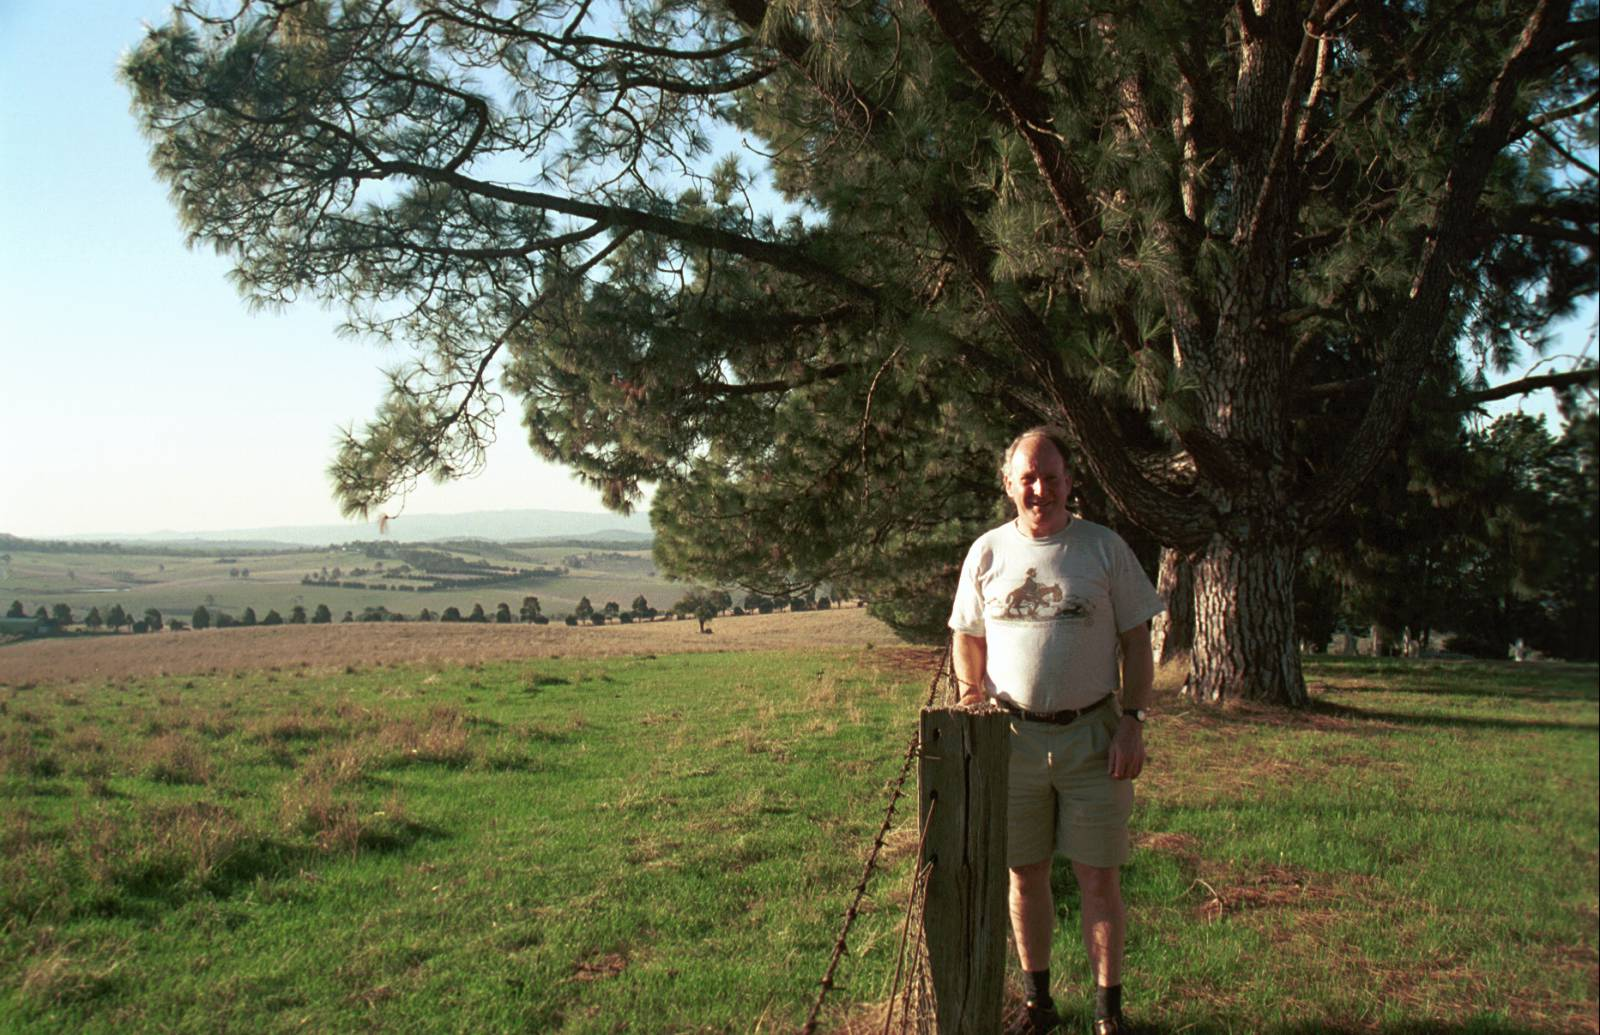 The author, Bruce G. Draper stands on the border of Arthurs Creek Cemetery overlooking the original Hazel Glen homestead, in 2001